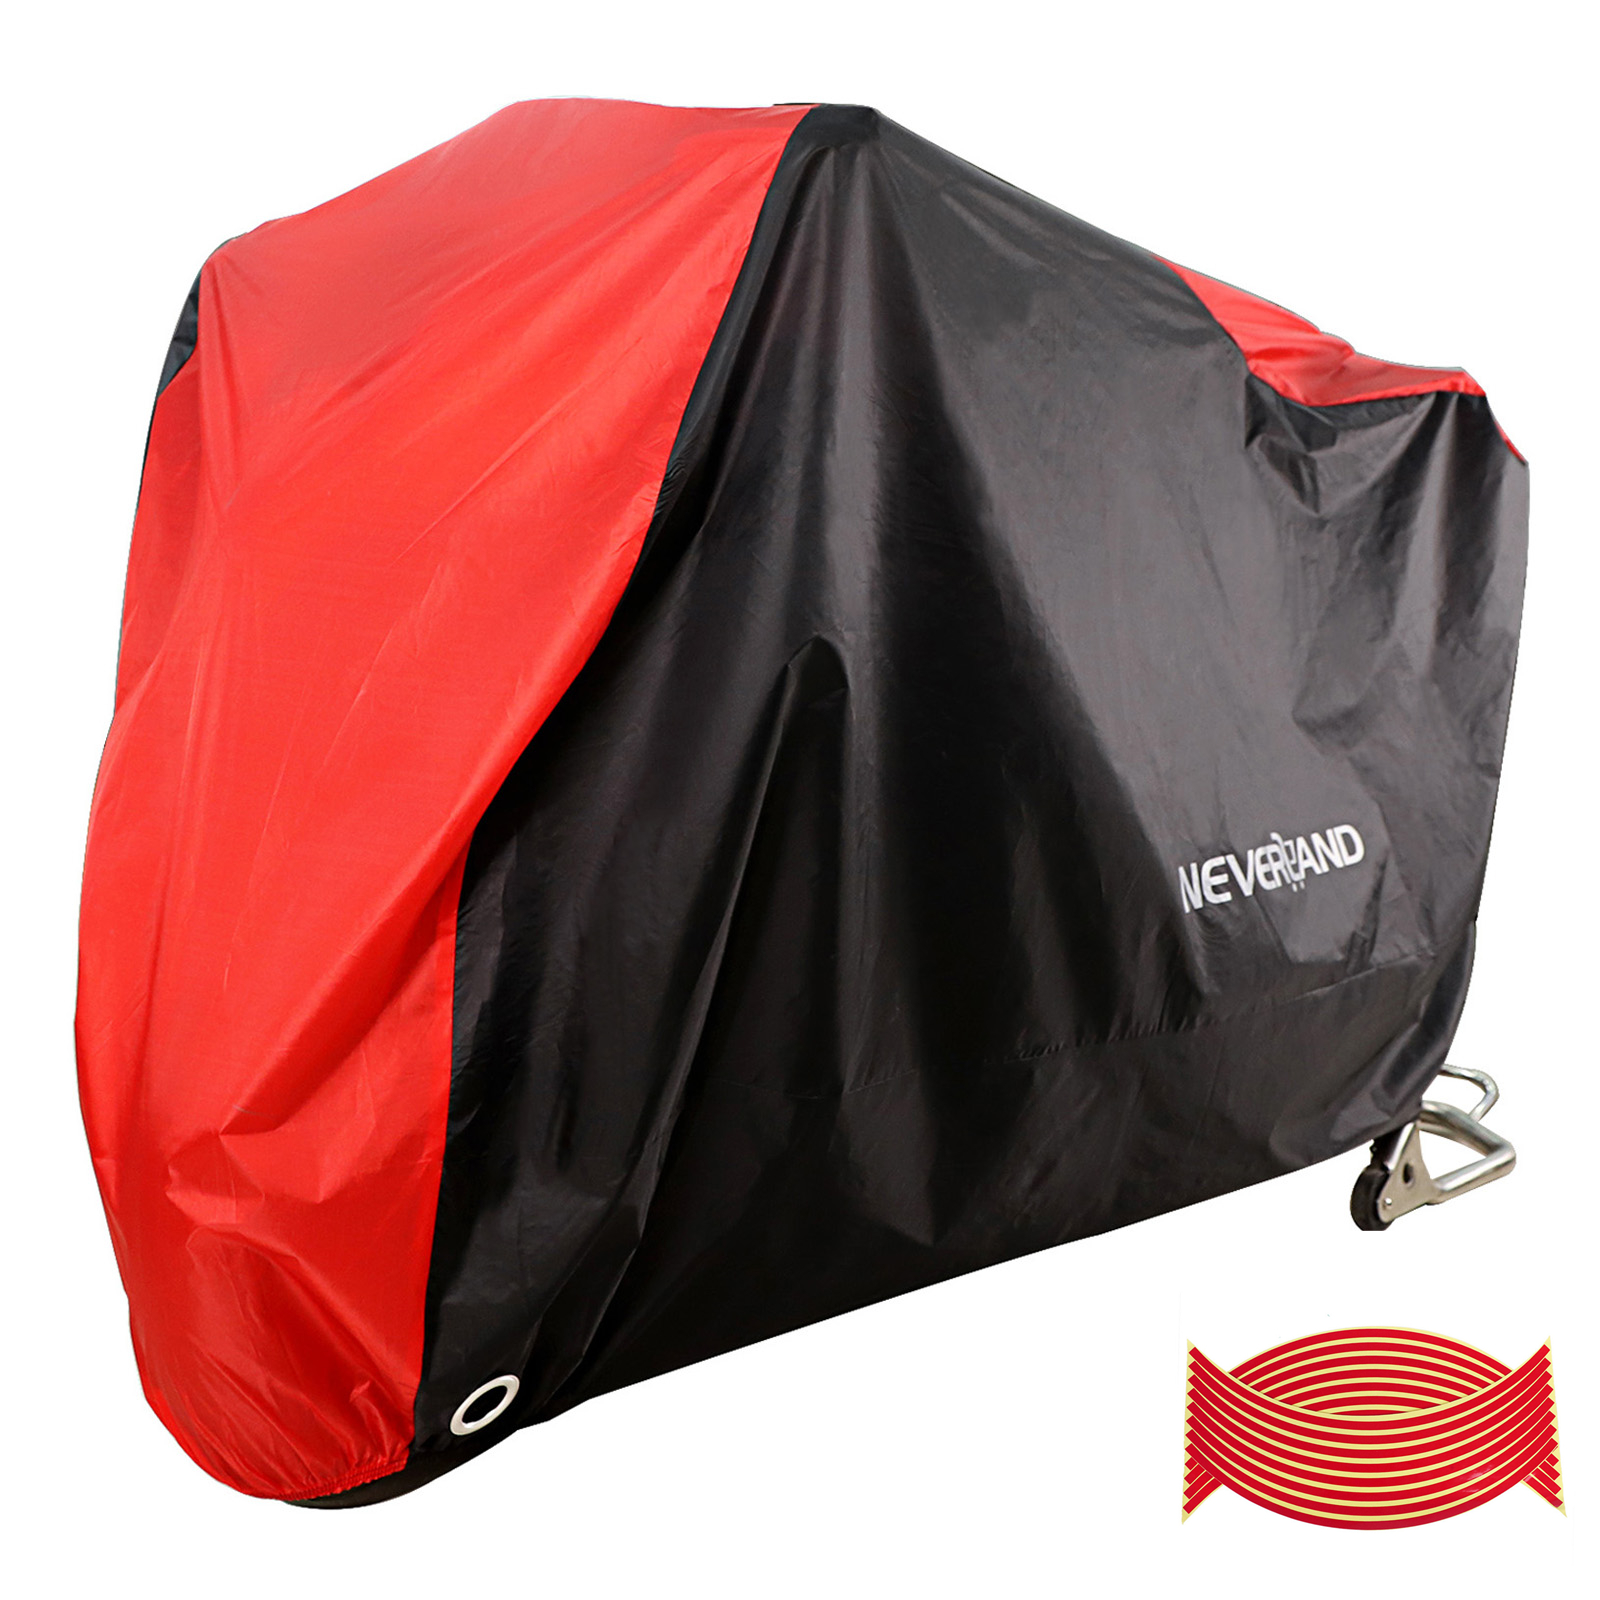 190T M L XL XXL XXXL Motorcycle Covers Outdoor Indoor Motorbike Scooter Motors Rain UV Dust Protective Red Cover For Honda D35